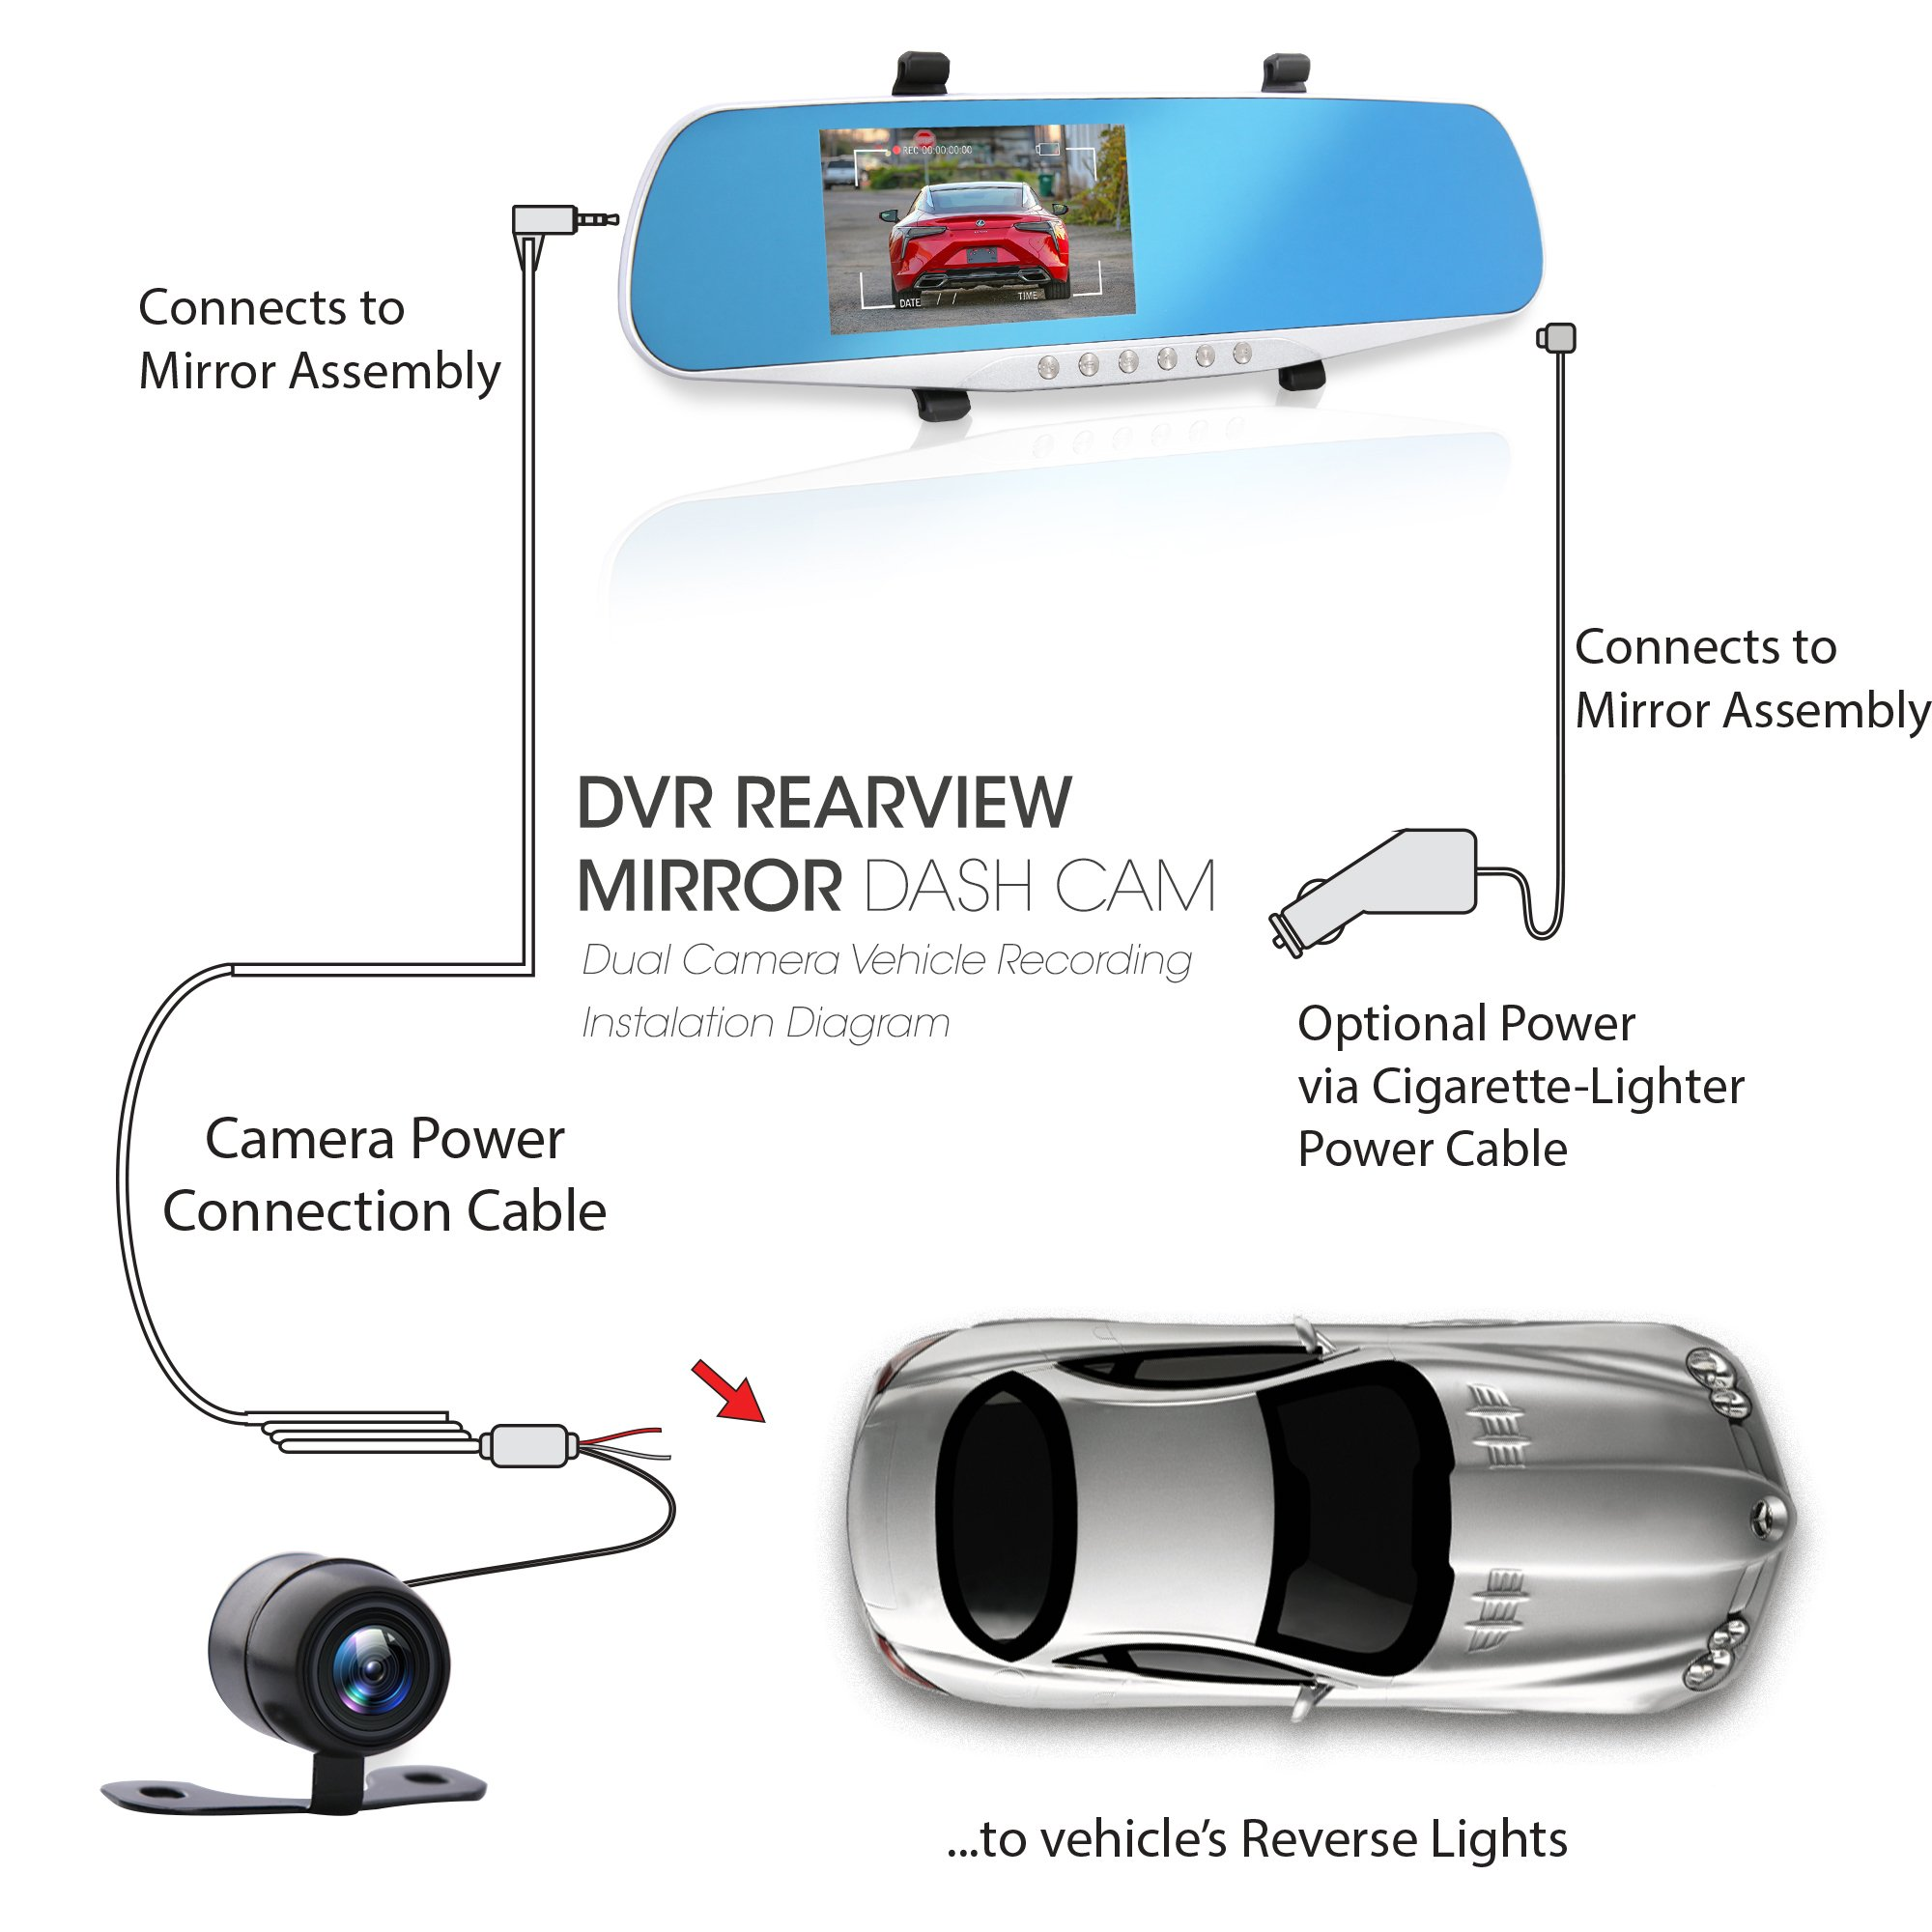 """Dash Cam Rearview Mirror Monitor - 4.3"""" DVR Rear View Dual Camera Video Recording System in Full HD 1080p w/Built in G-Sensor Motion Detect Parking Control Loop Record Support - Pyle PLCMDVR46 by Pyle (Image #5)"""